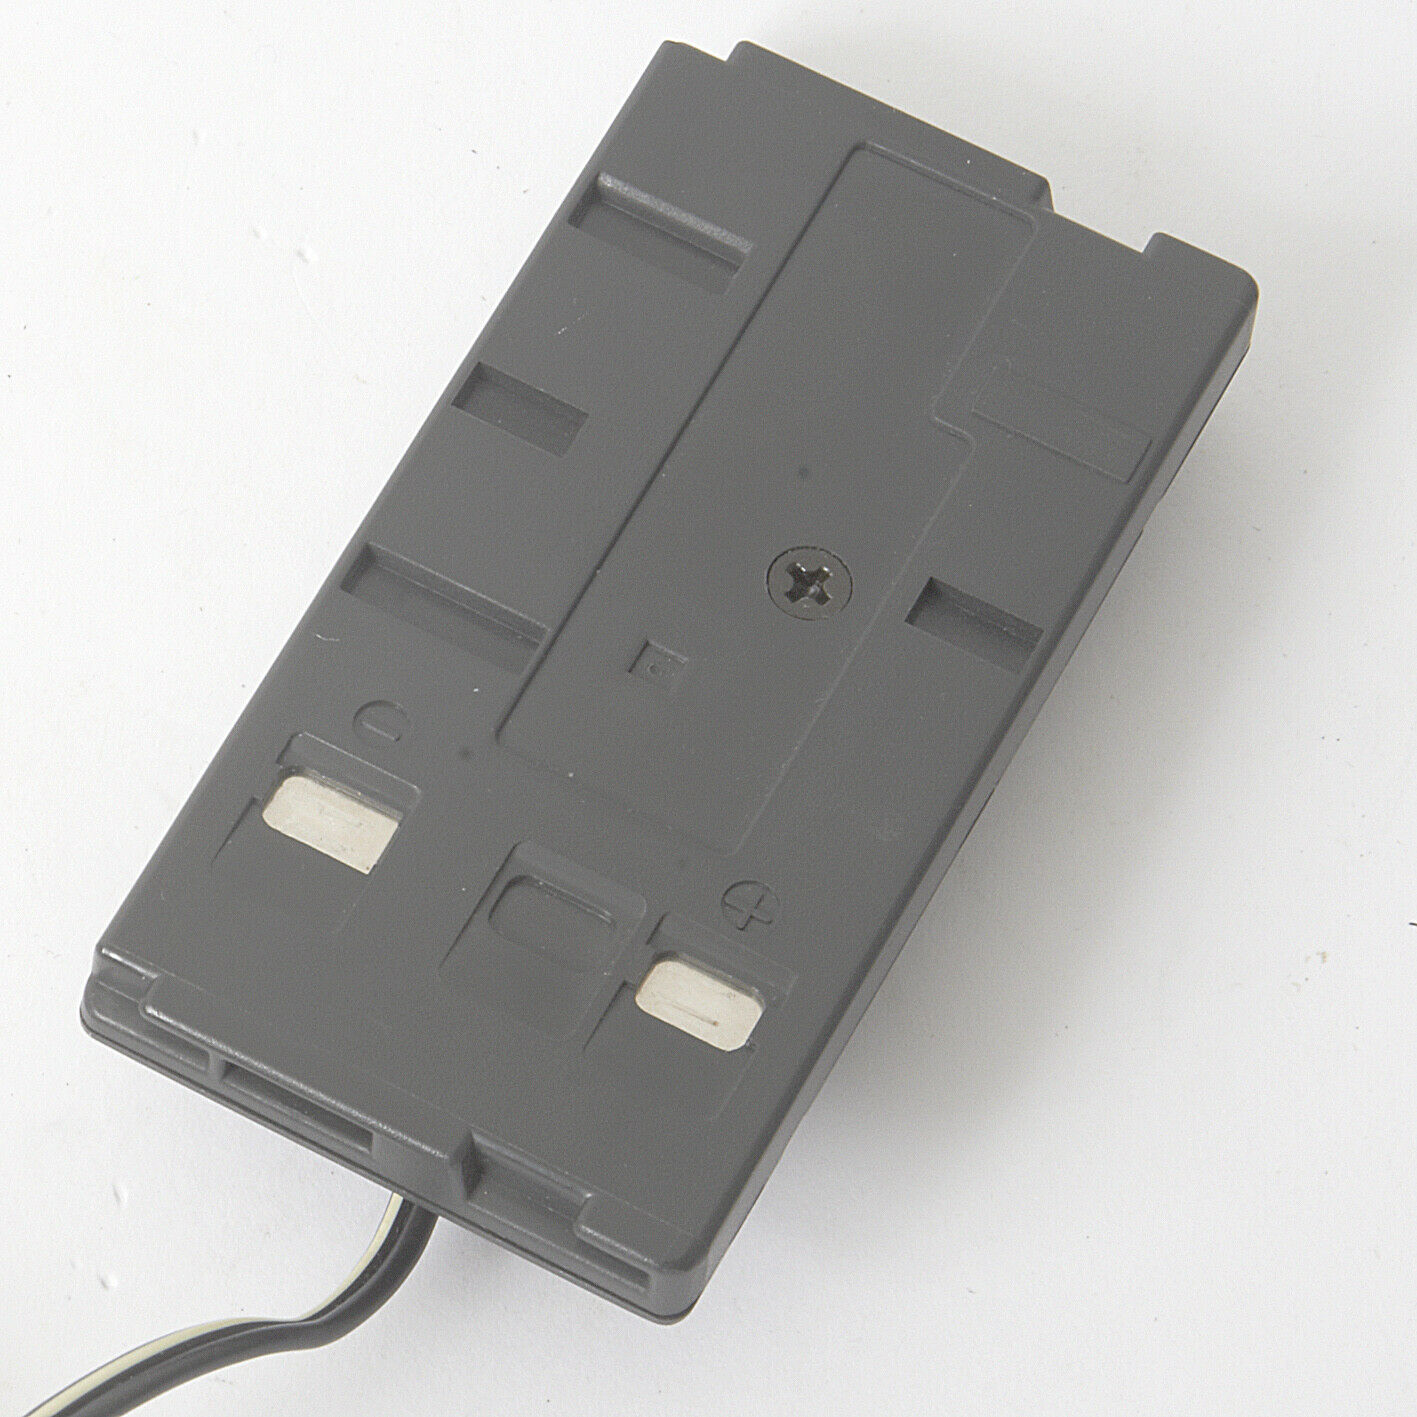 CAMCORDER BATTERY POWER PLATE TO CONNECT TO AC ADAPTER Camera Unknown #2